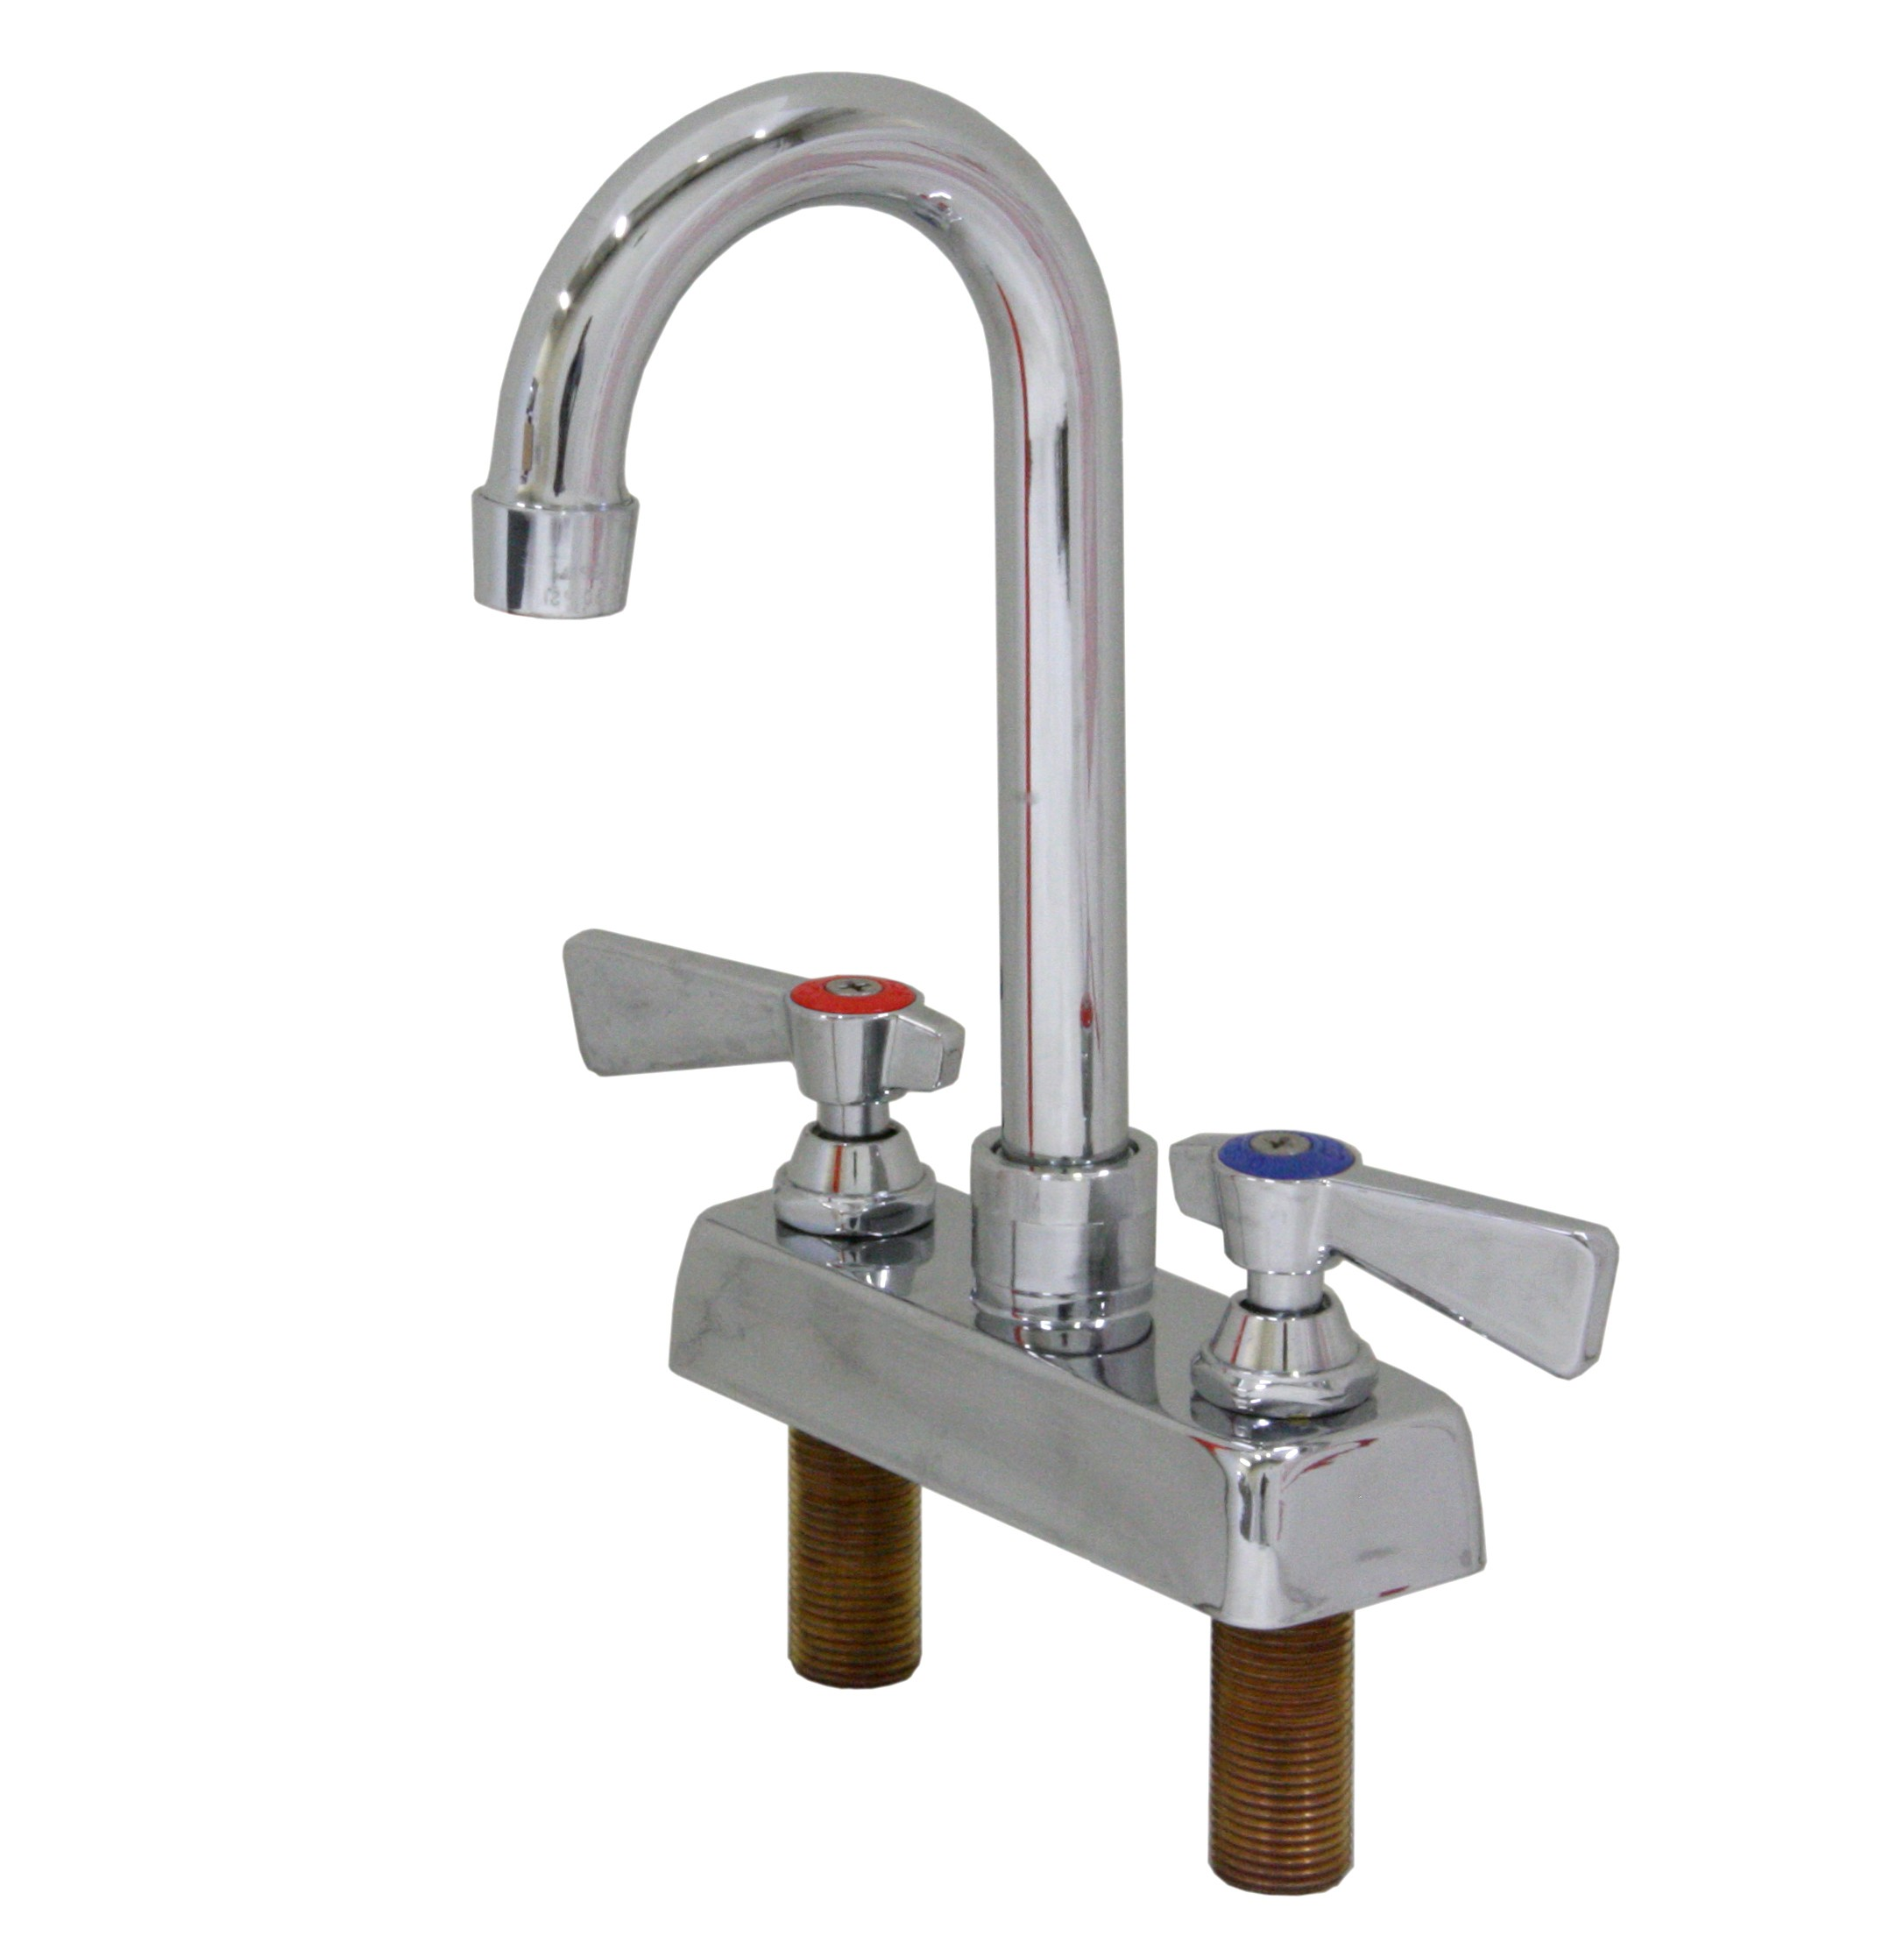 artifacts pin chef in beverage vibrant k executive dispenser faucets sink fixtures stainless faucet with soap kitchen kohler traditional wellspring